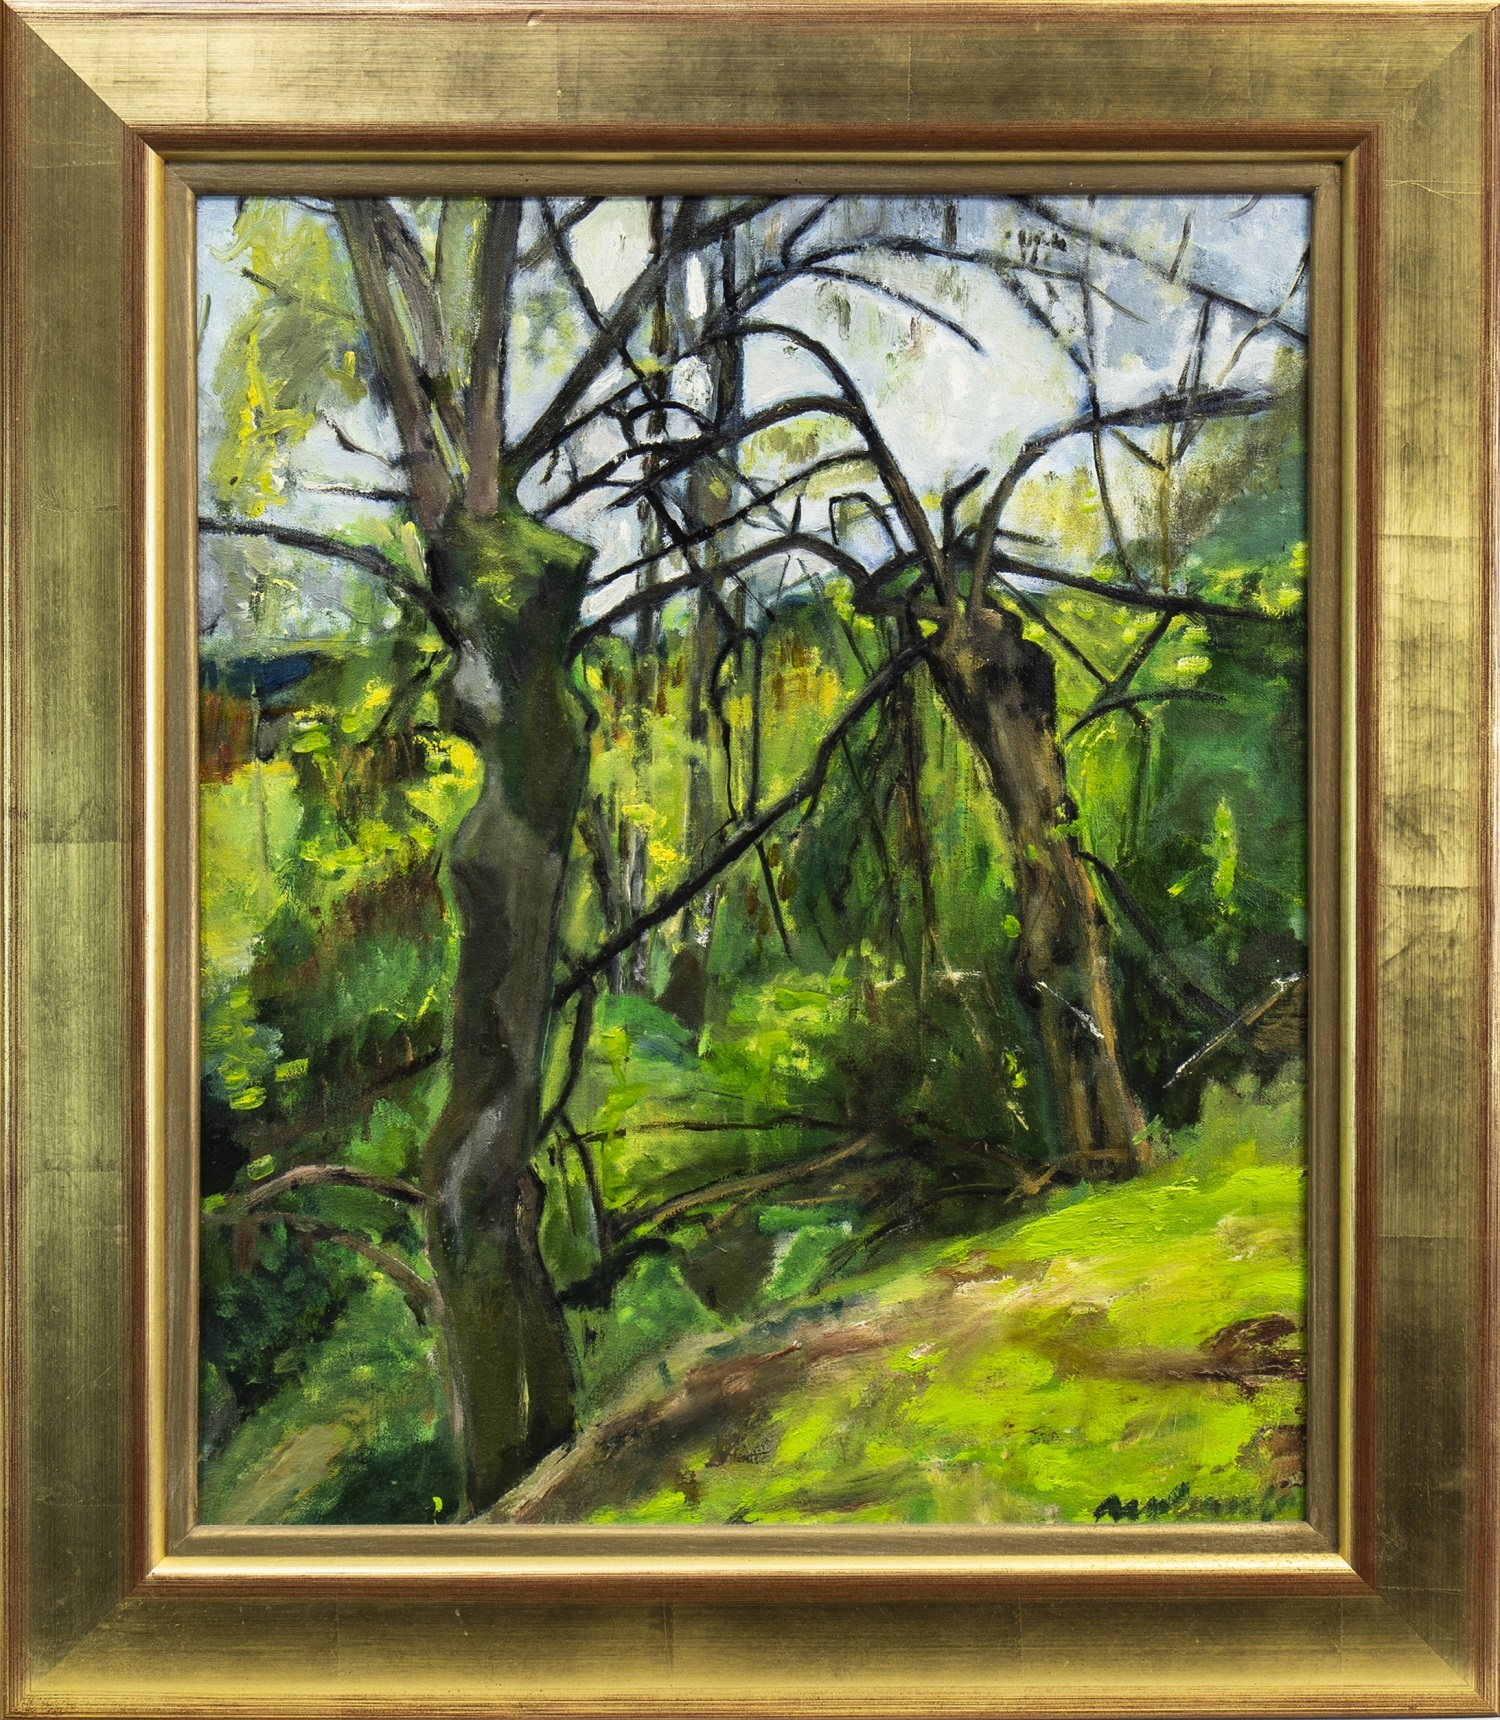 Lot 622 - GREEN LANDSCAPE WITH TREES, AN OIL